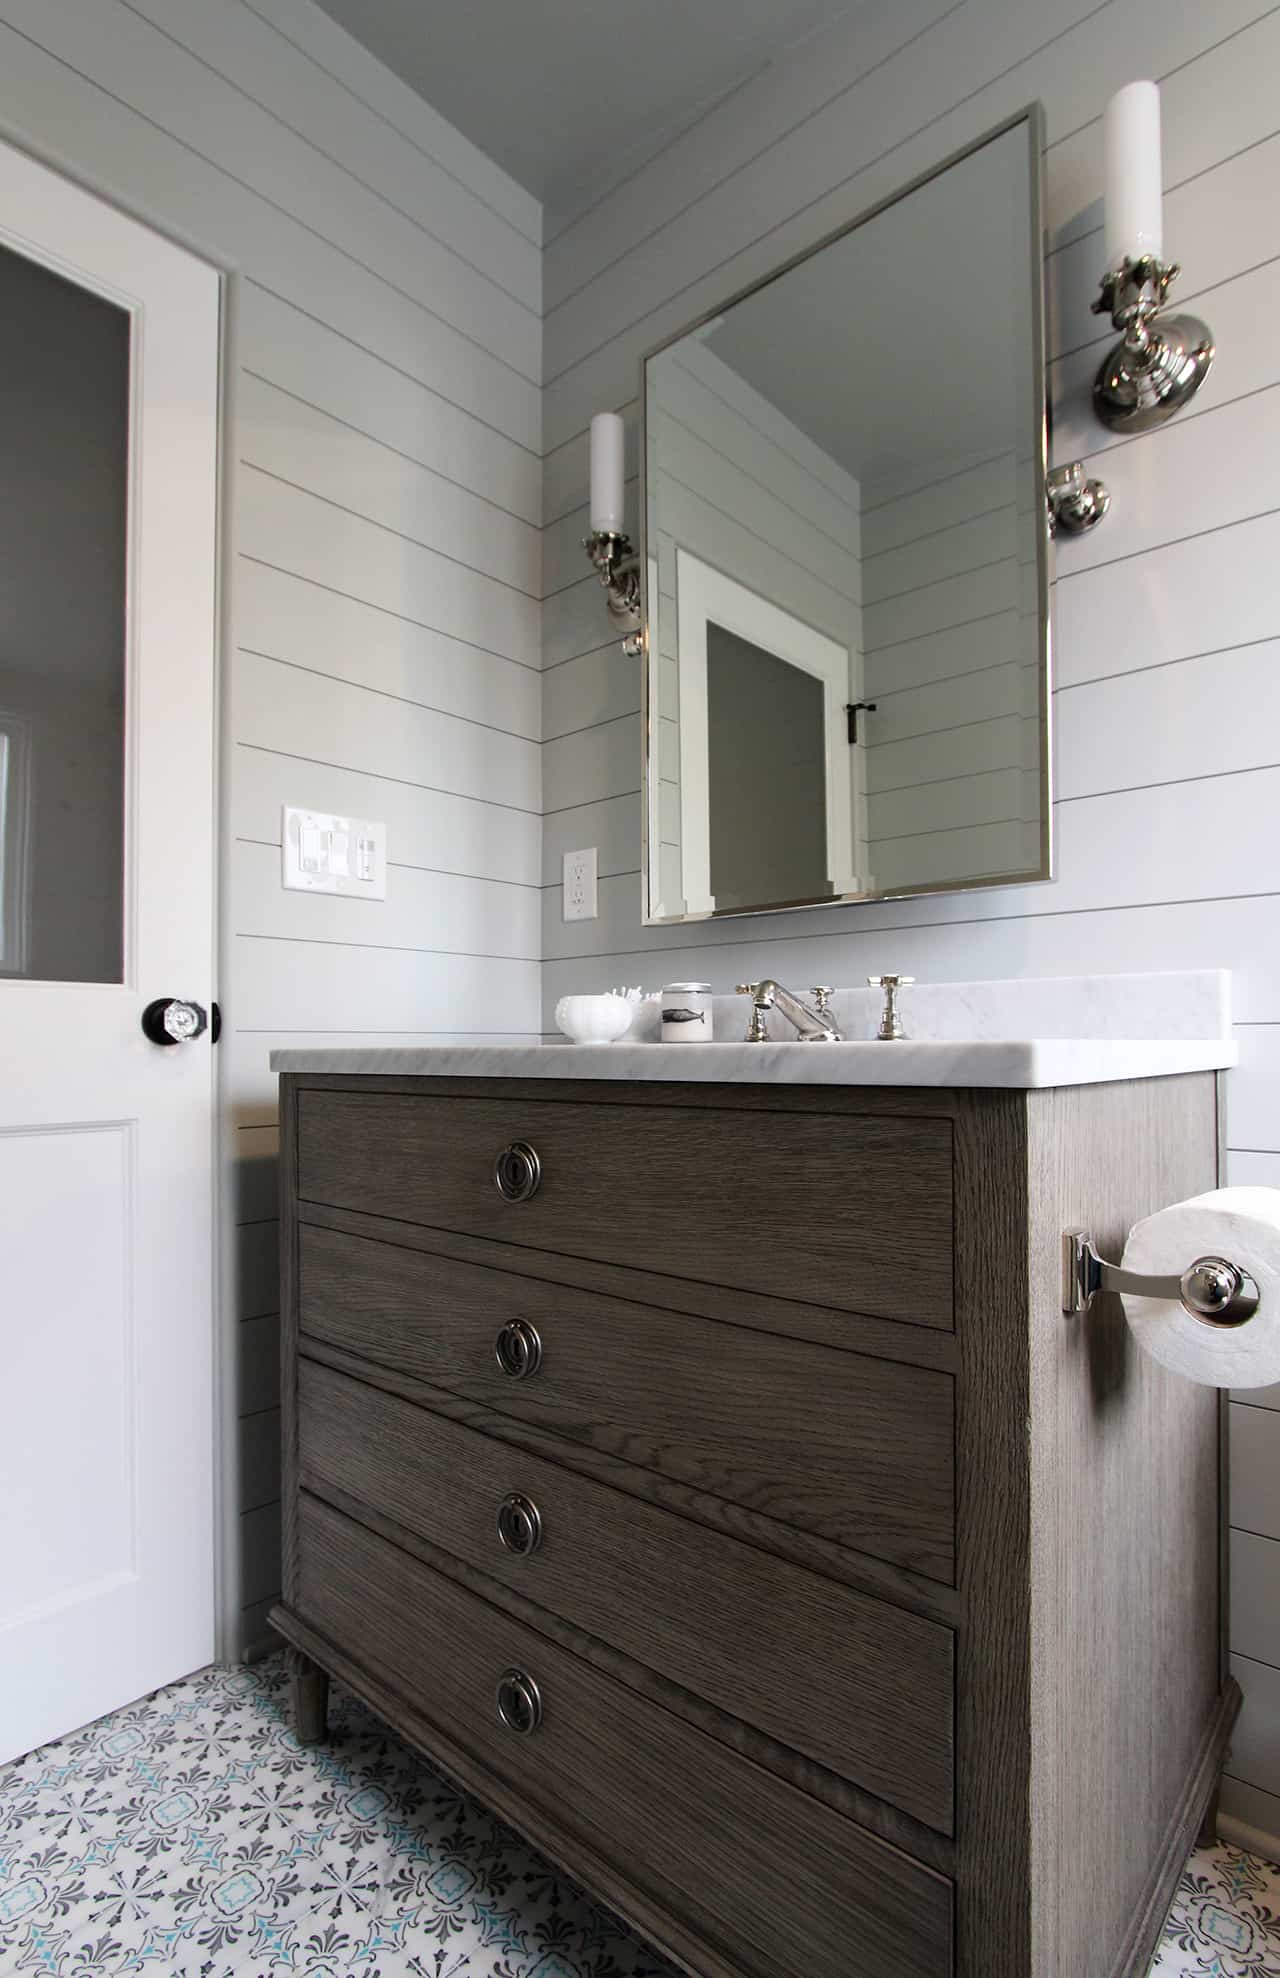 Natural finishes in this bathroom remodel